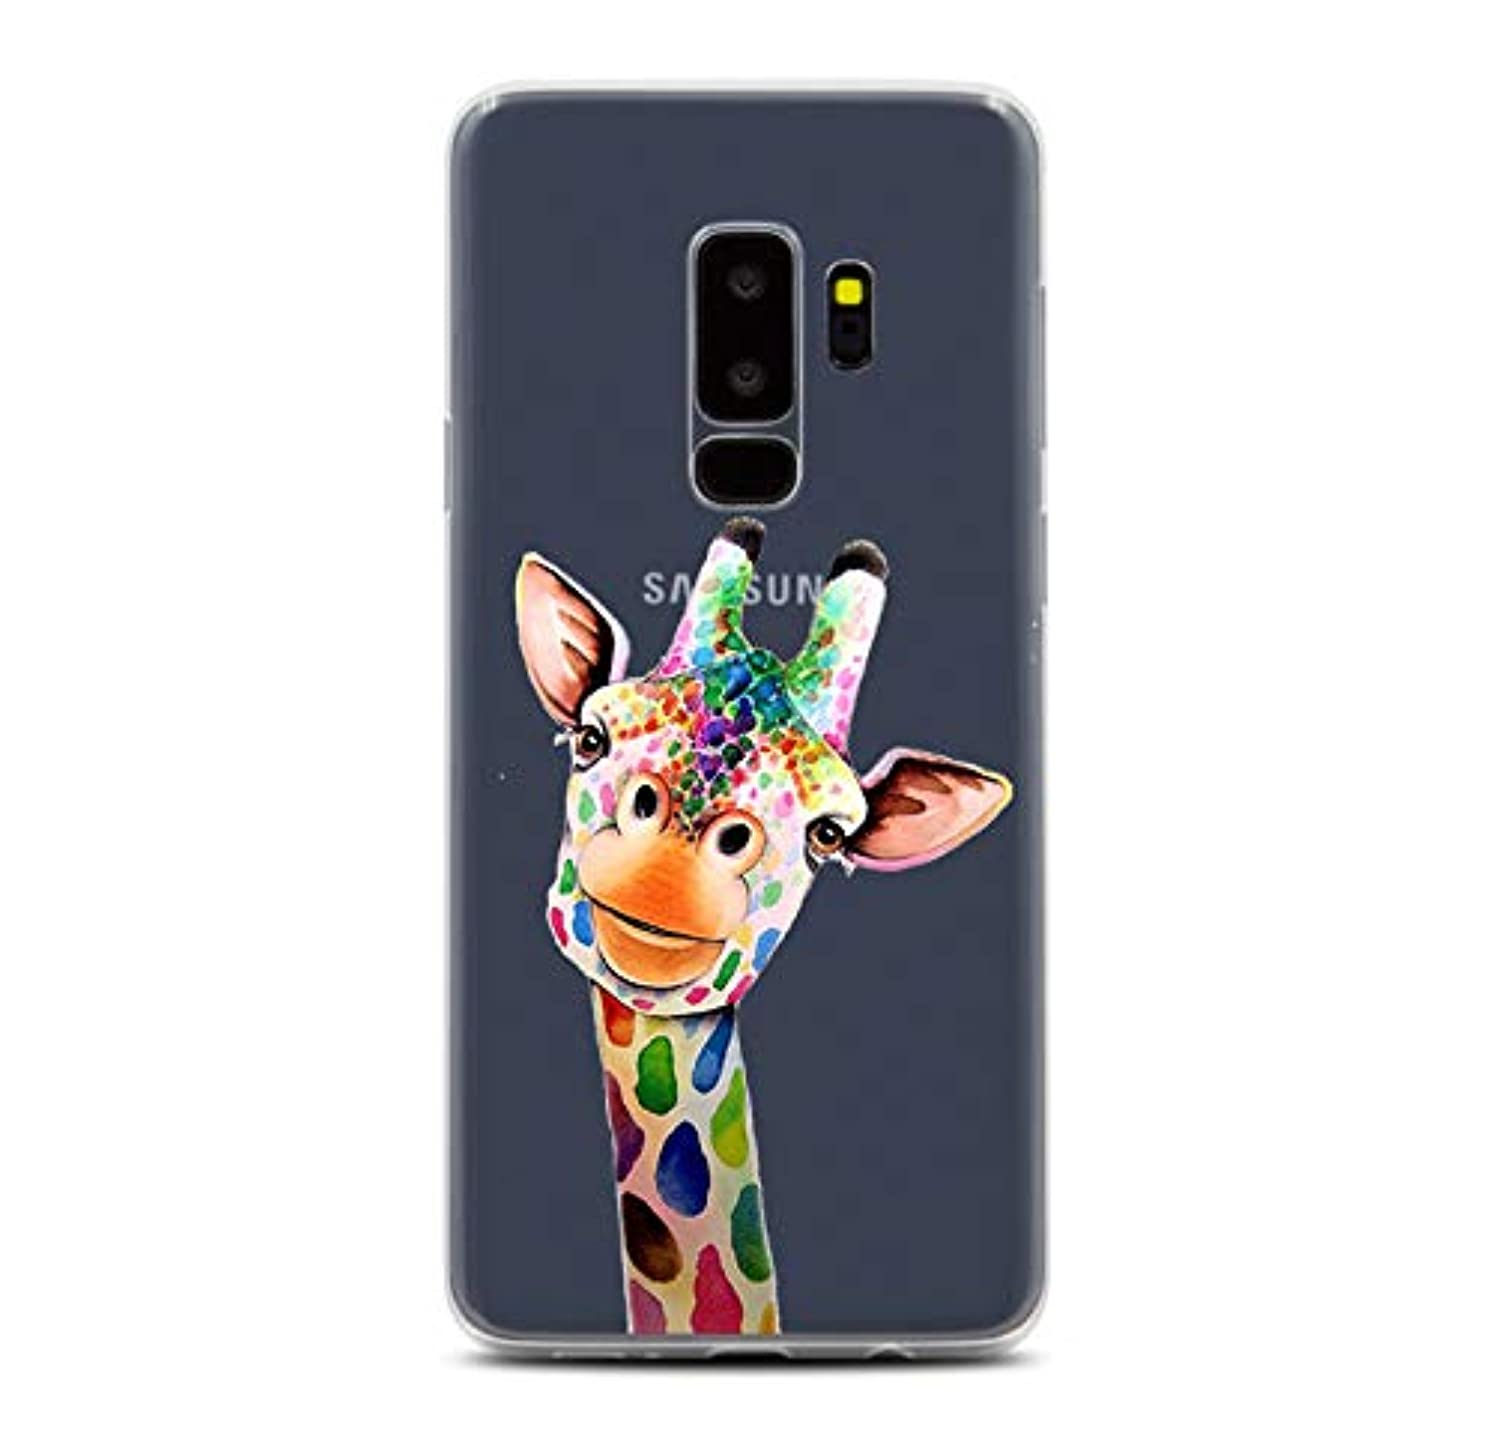 LEMONCOVER Phone Case Compatible with Galaxy S9 Plus Case,Lovely Animal Colorful Pattern Soft Silicone Protective Shockproof Clear Cute Art Design Funny Bumper Back Cover for Galaxy S9 Plus, Giraffe